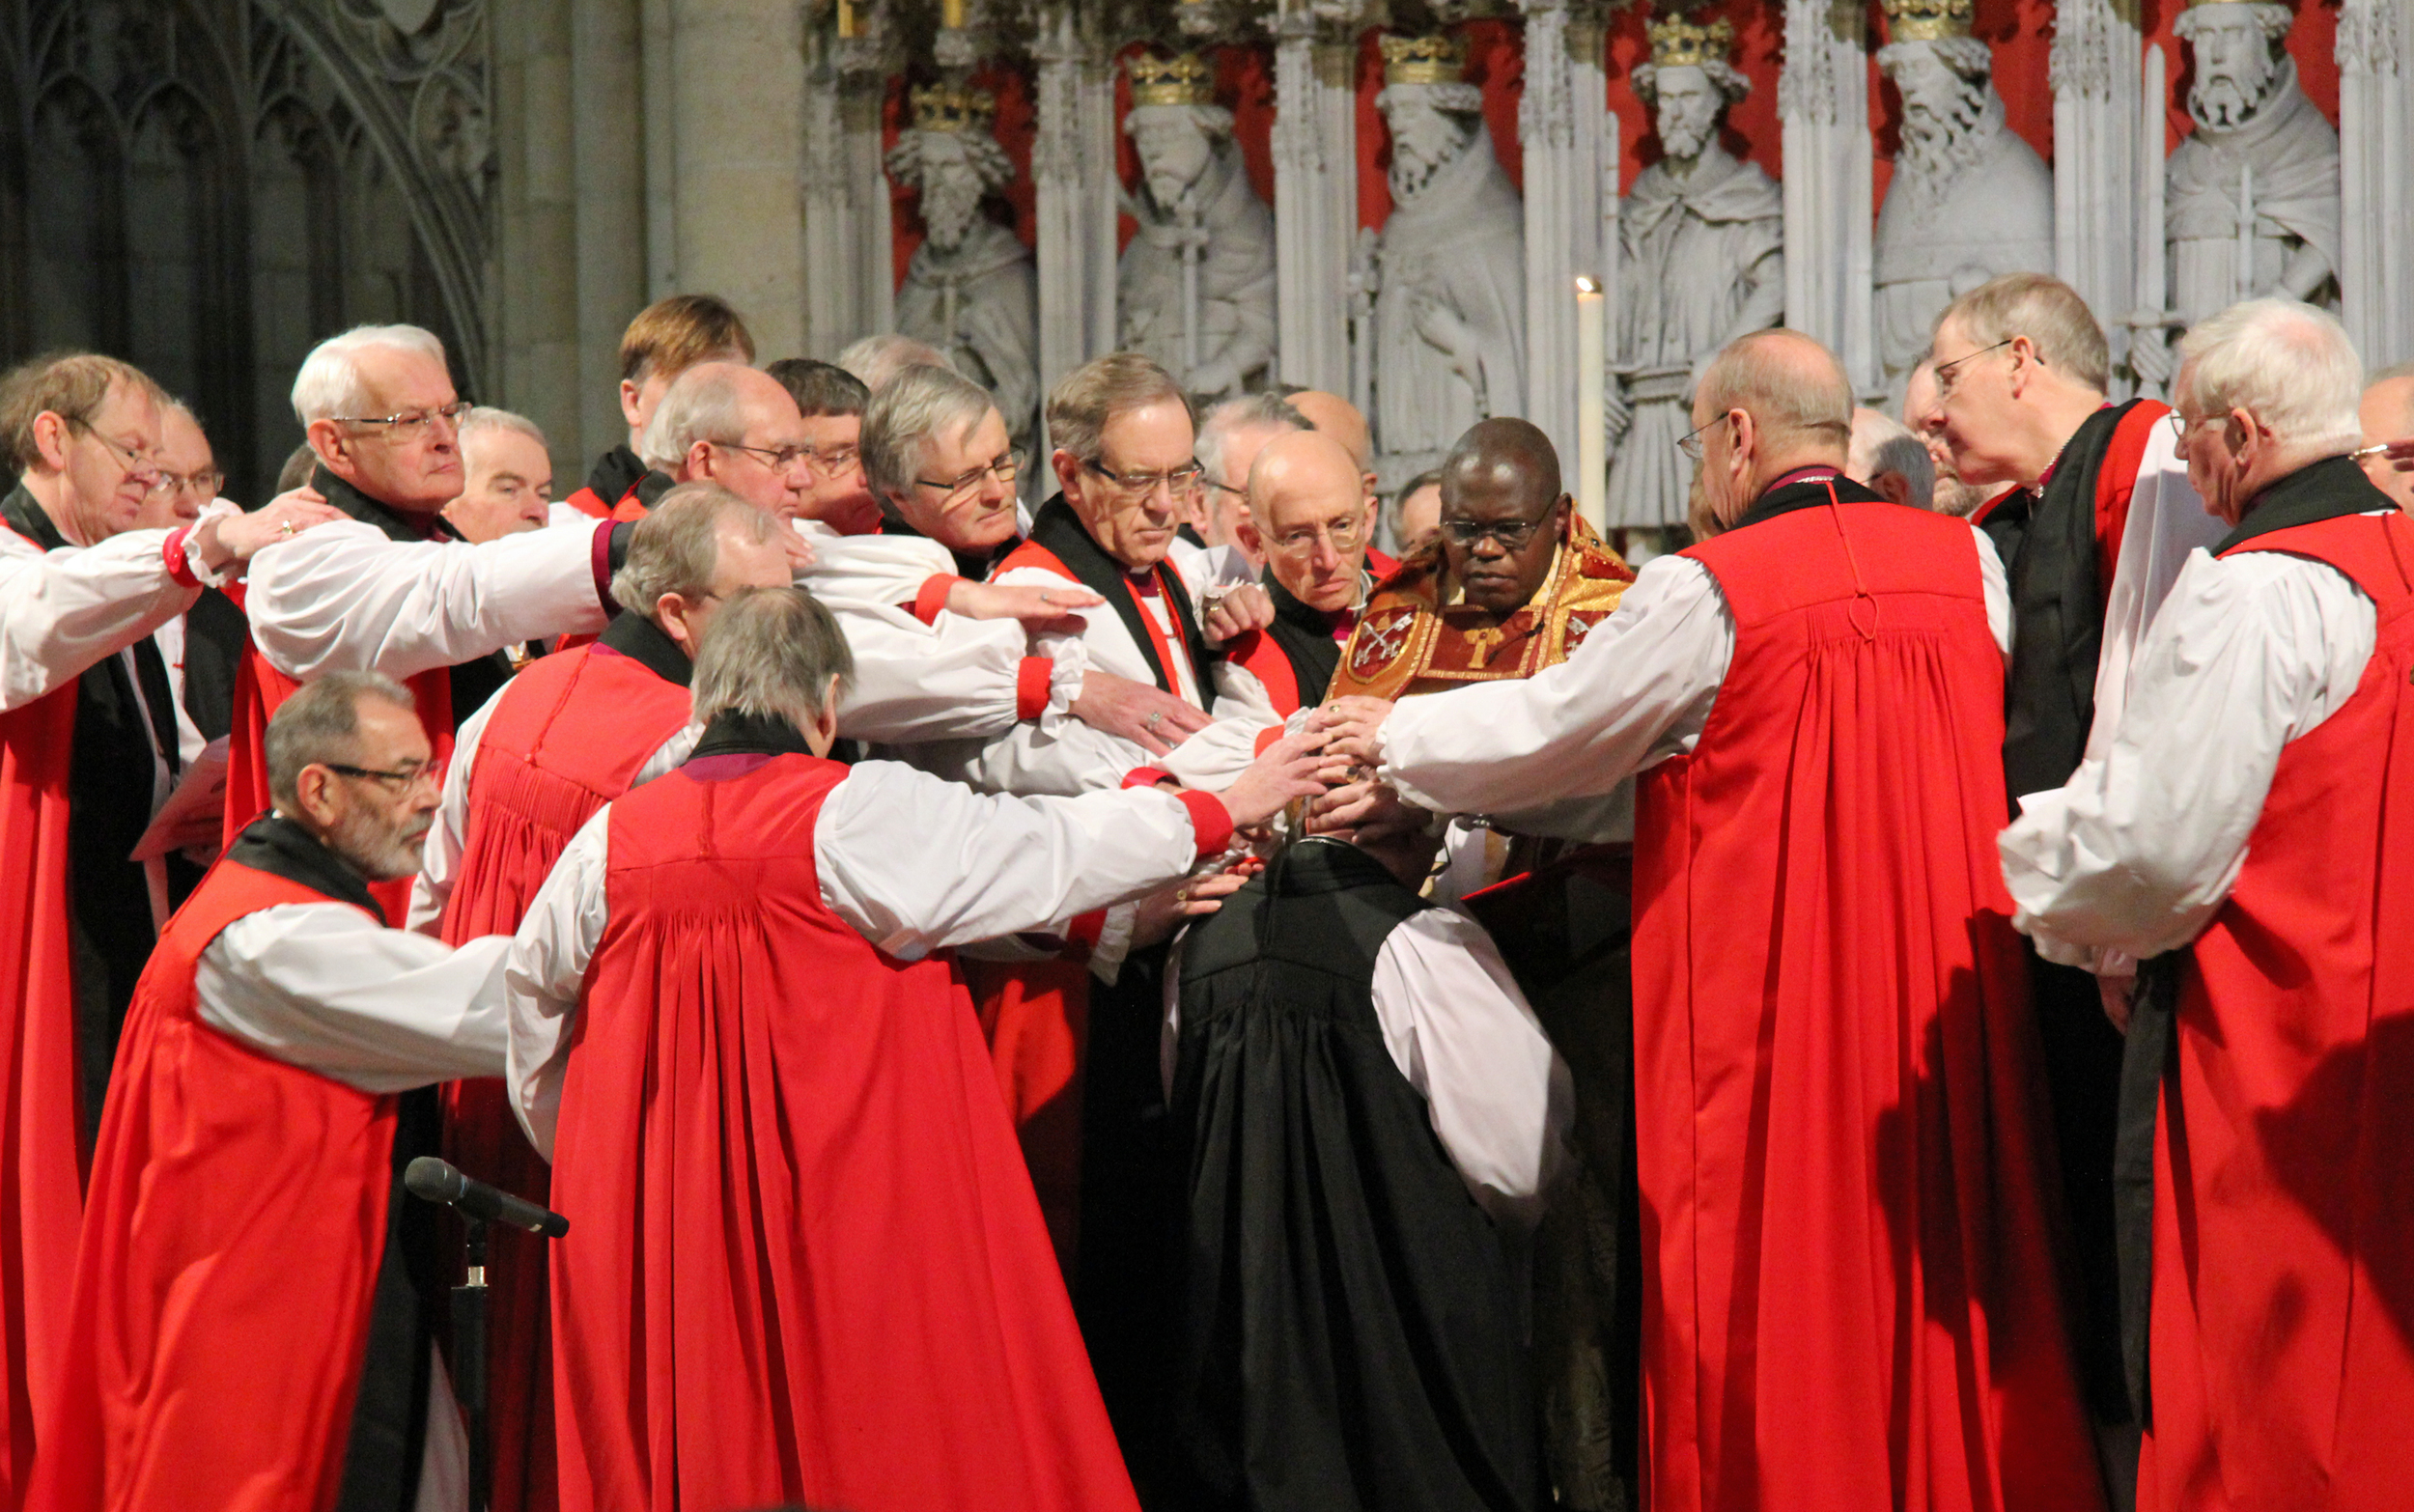 Notice anything odd about this picture?  (This is not Bishop North's consecration, btw)